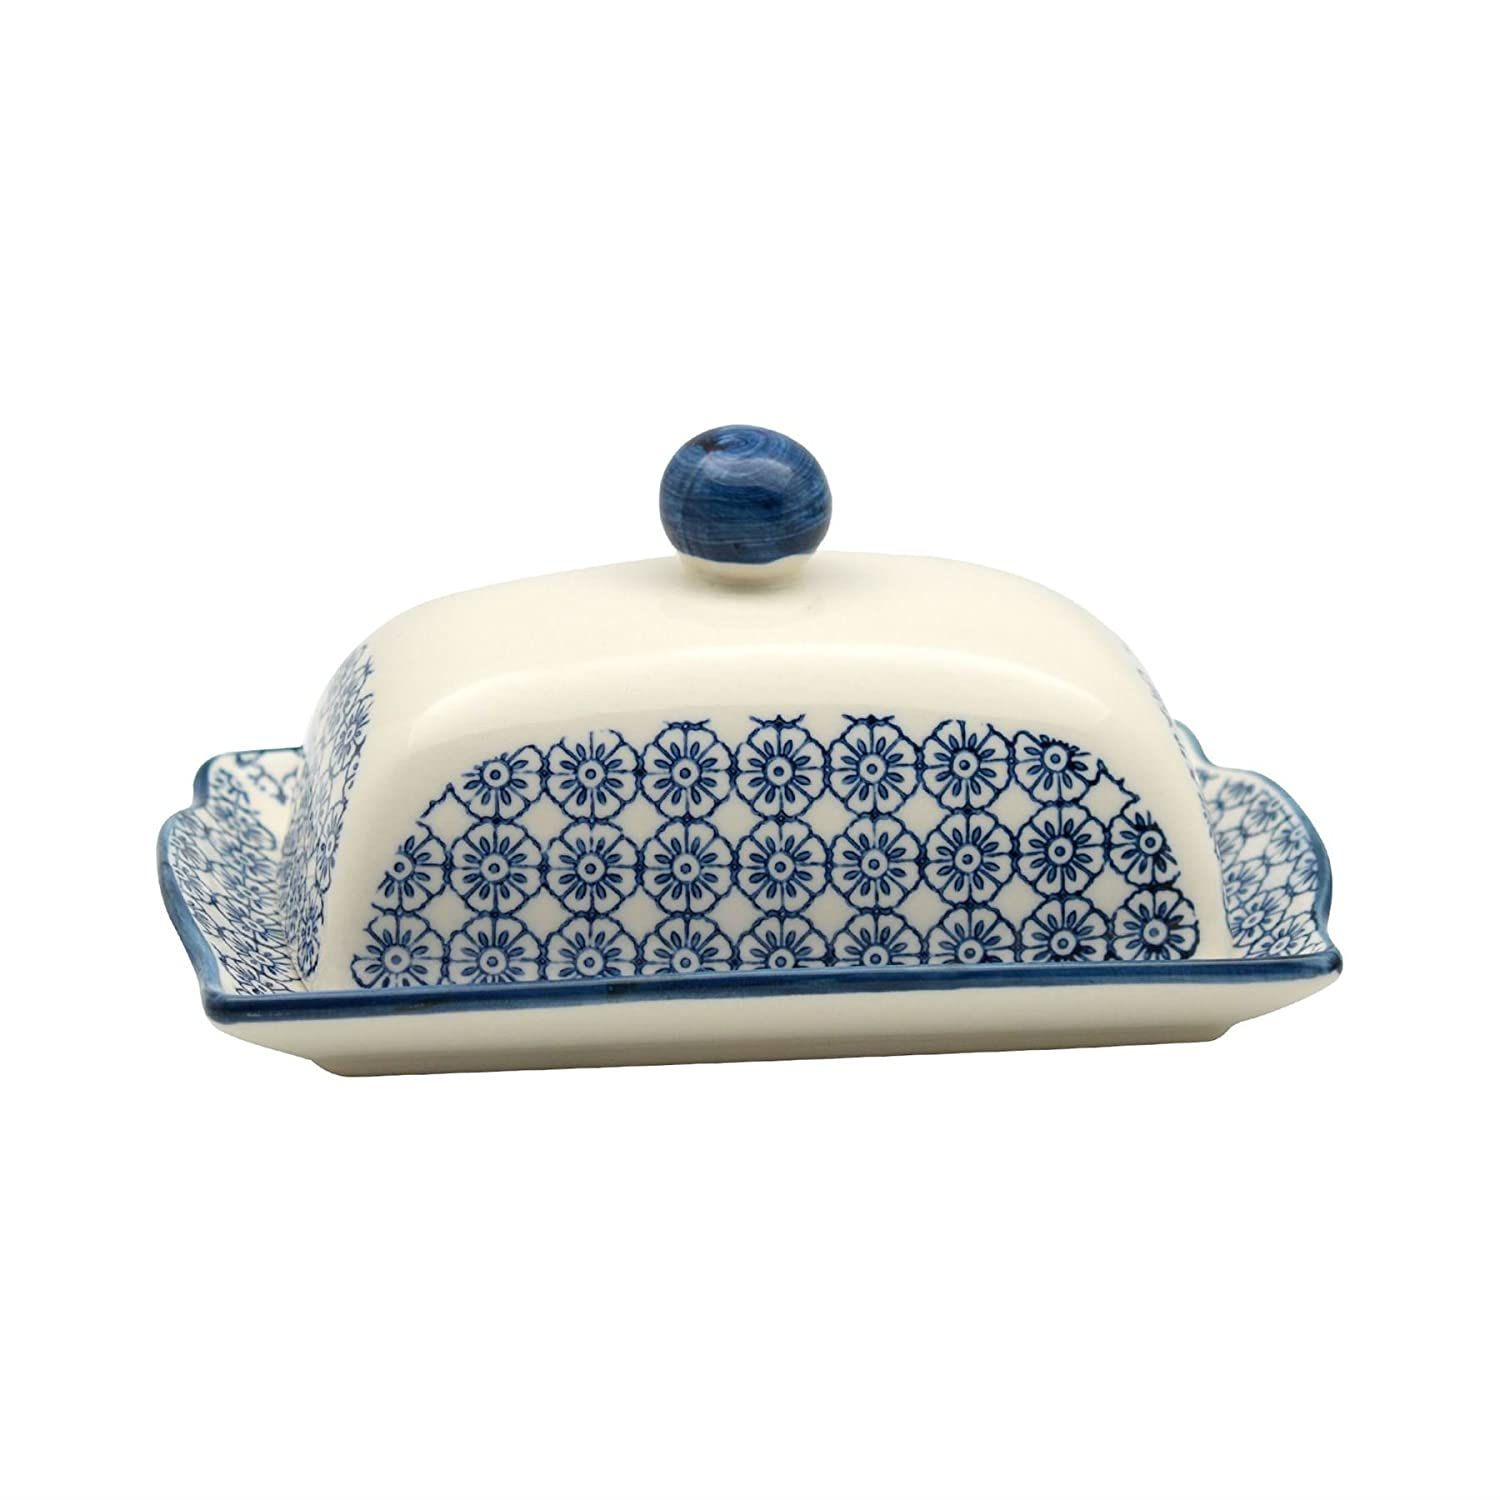 Patterned Butter / Margarine Dish with Lid - 185mm (7.3 inches) - Blue Flower Print Nicola Spring